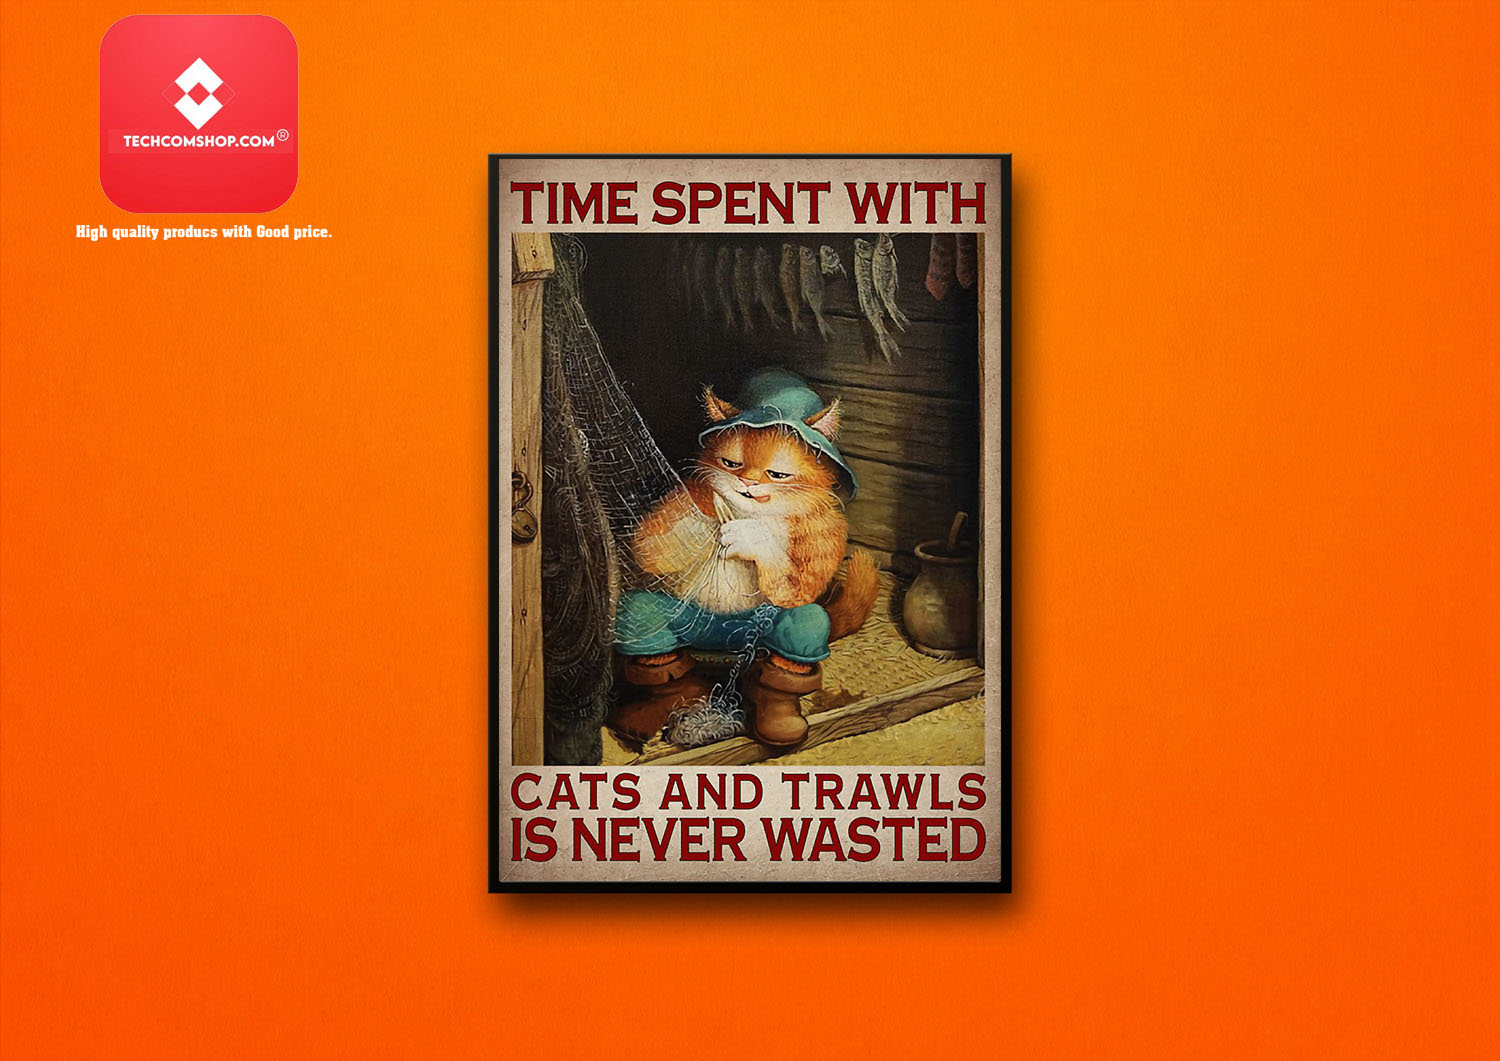 Time spent with cats and trawls is never wasted poster 8